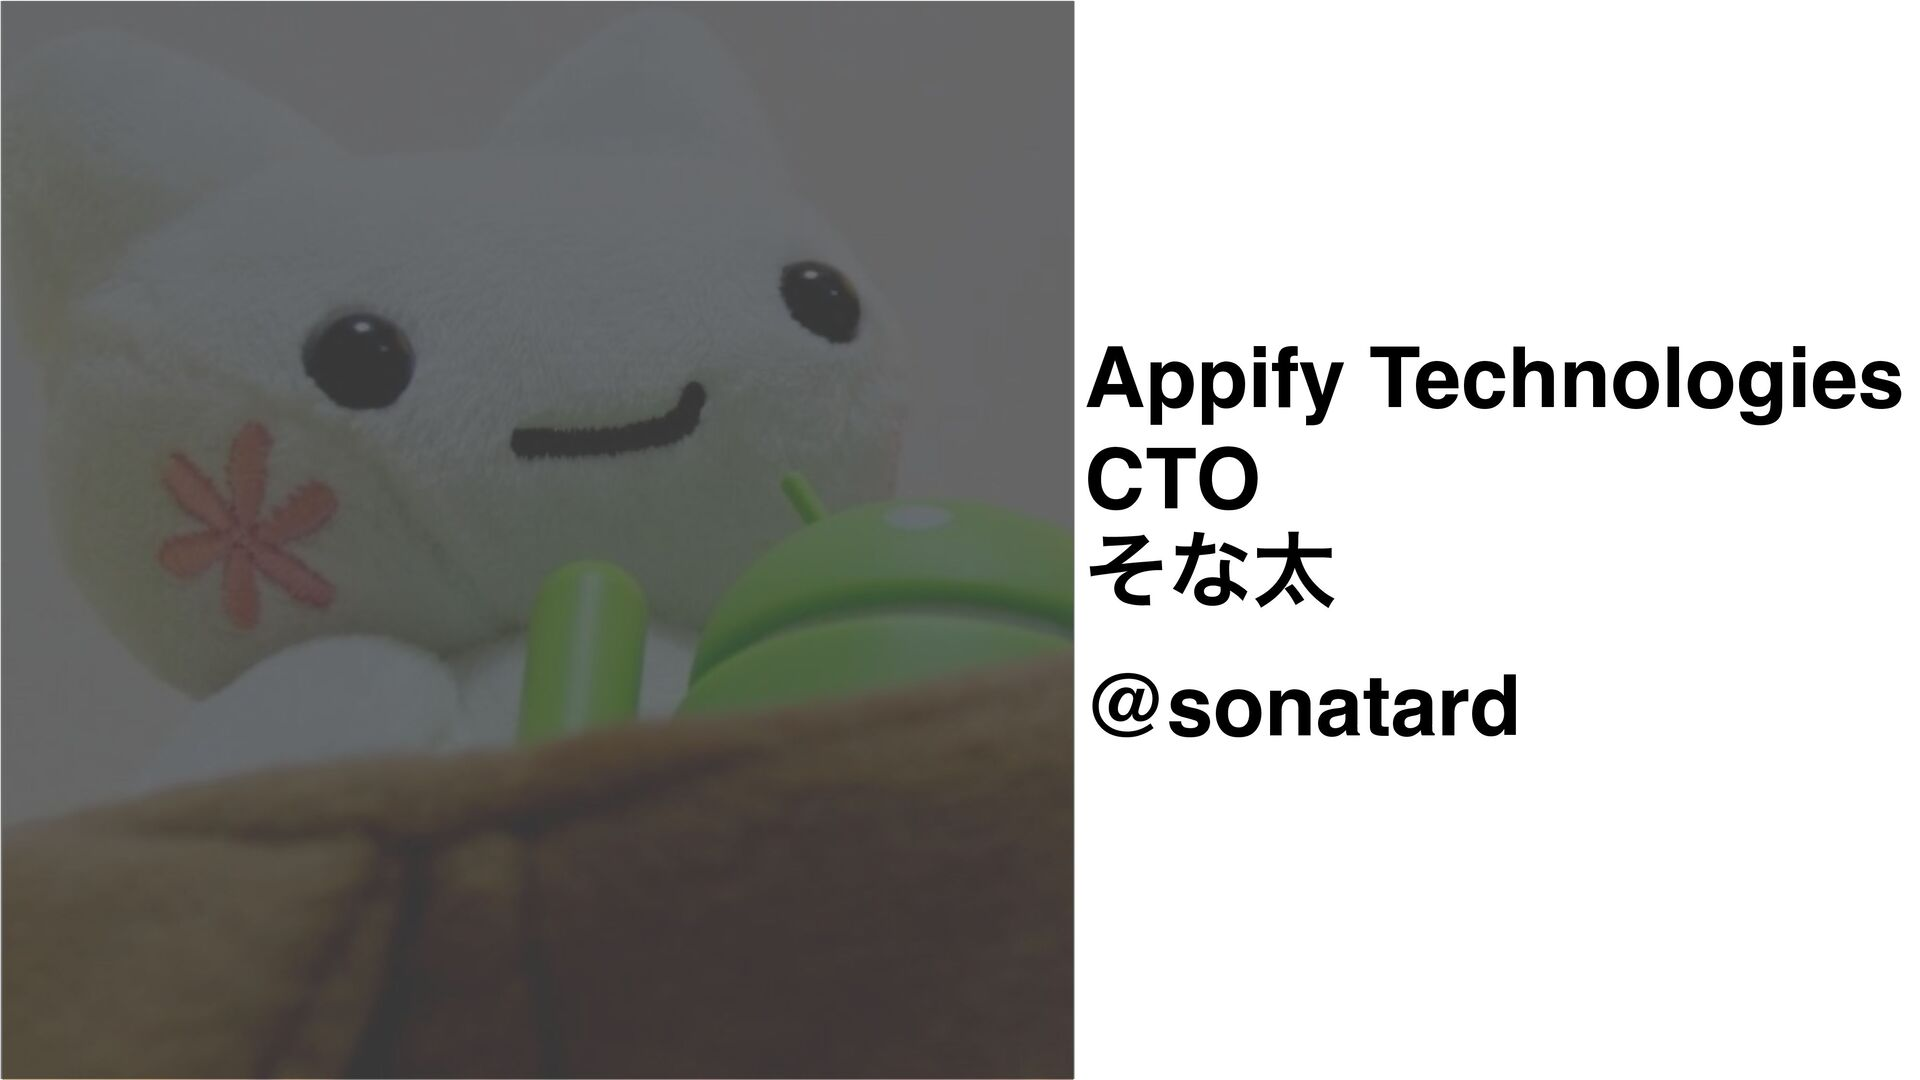 Appify Technologie s  CT O  ͦͳଠ @sonatard